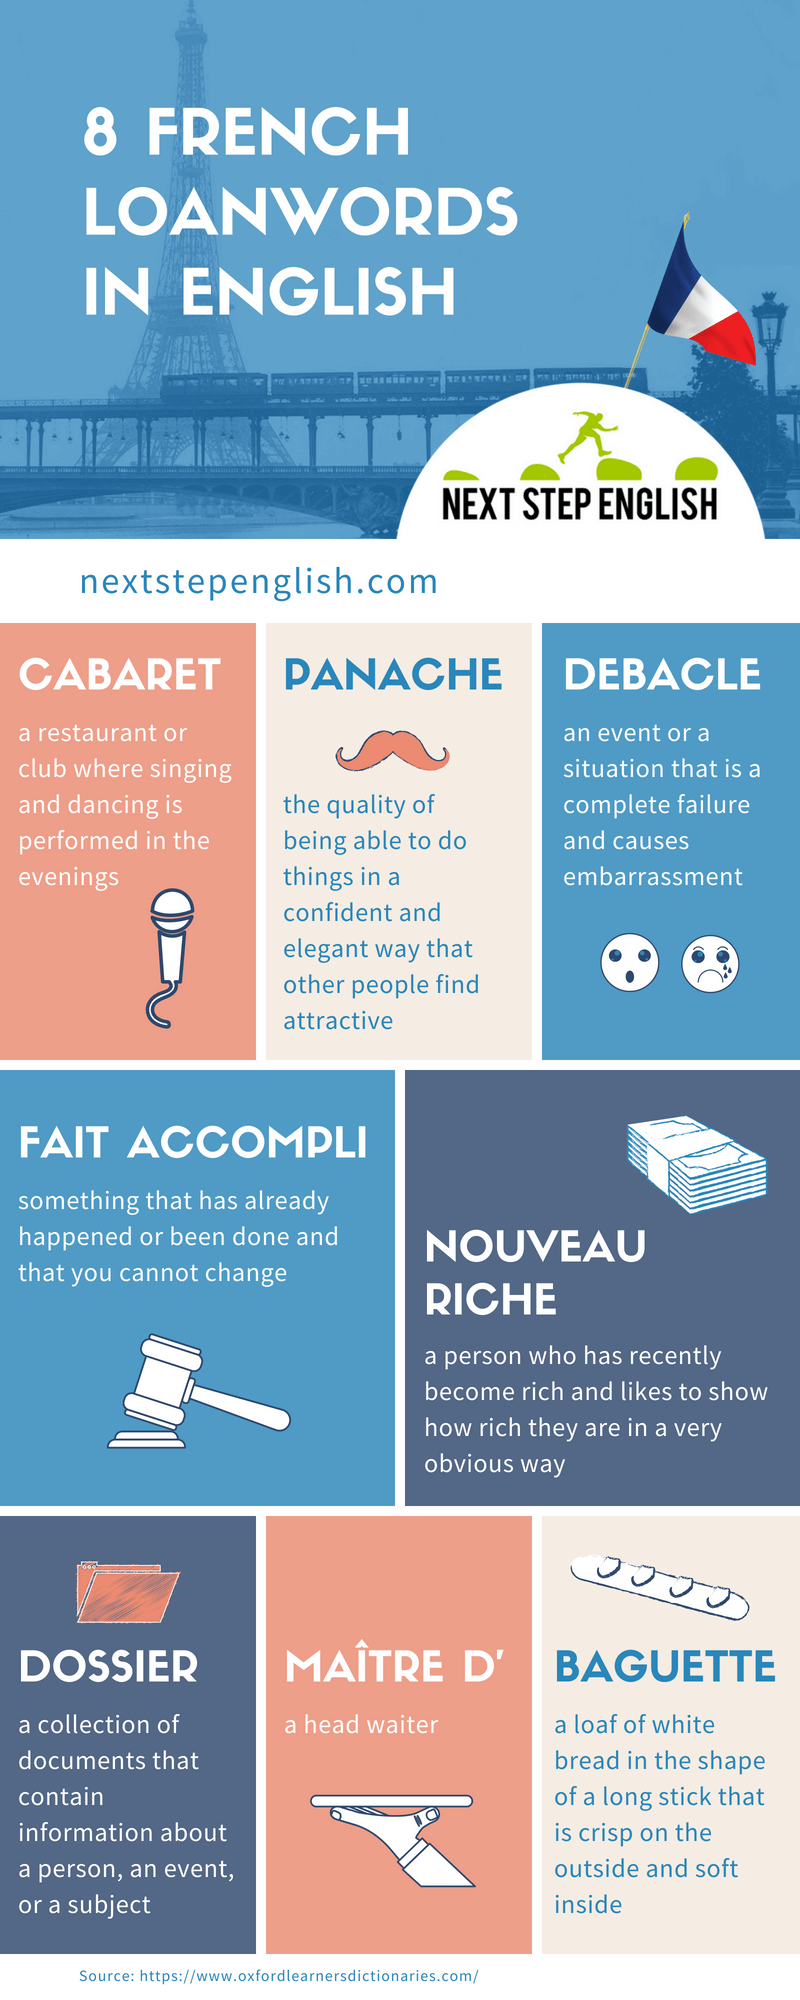 French-Loanwords-in-English-French-Words-in-English-Next-Step-English